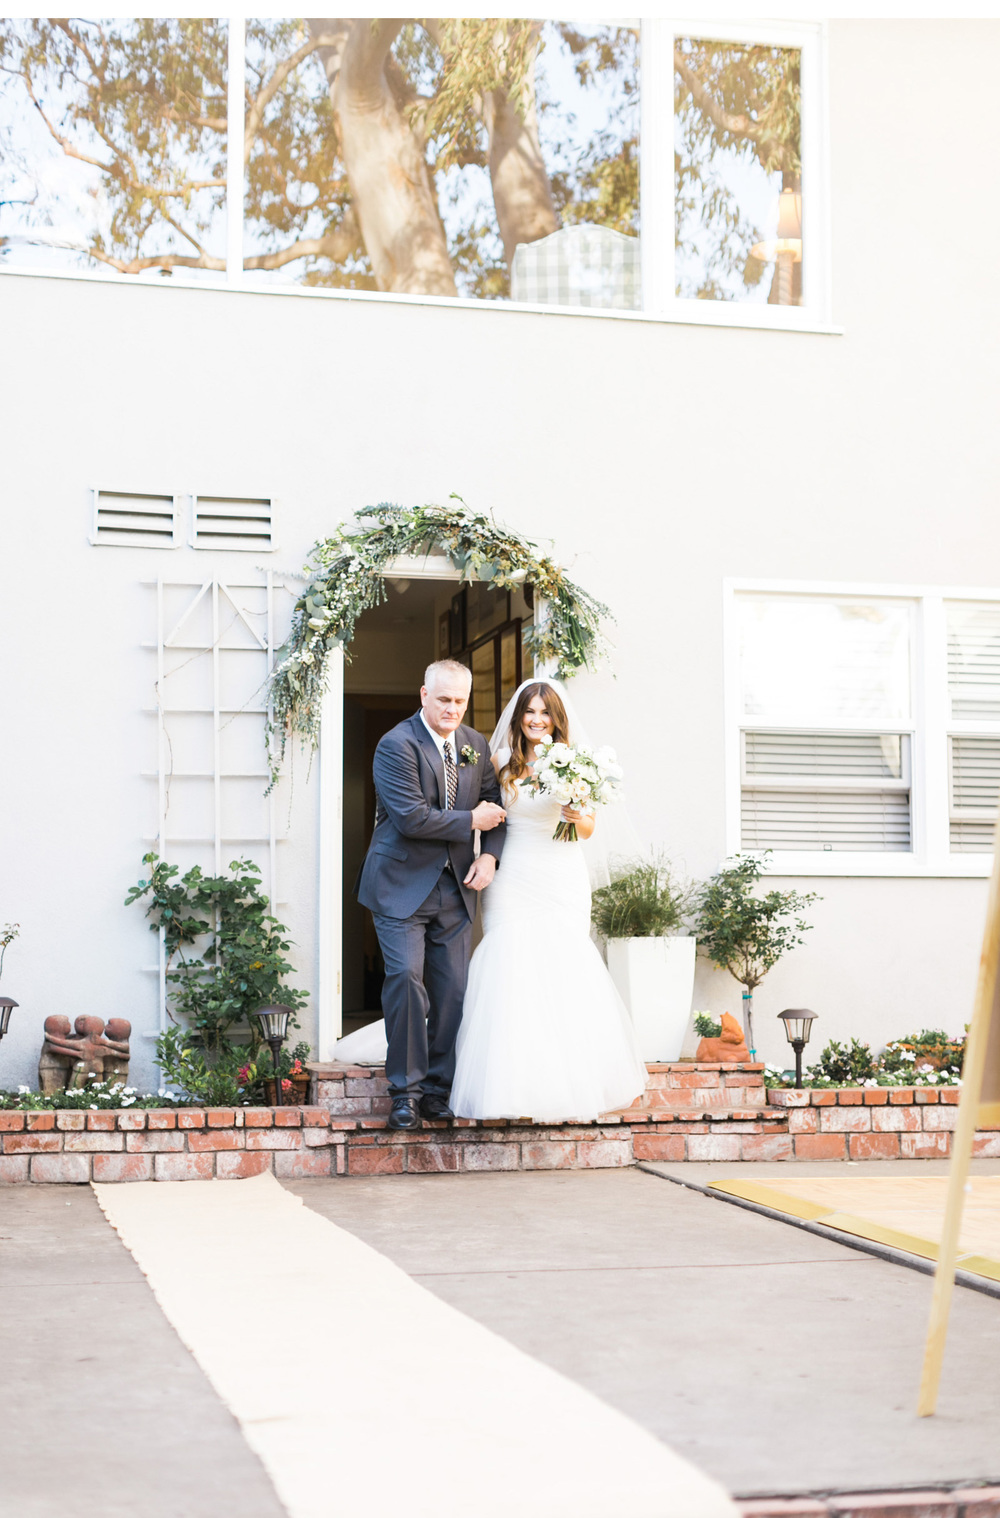 Style-Me-Pretty-Backyard-Wedding-Natalie-Schutt-Photography_01.jpg